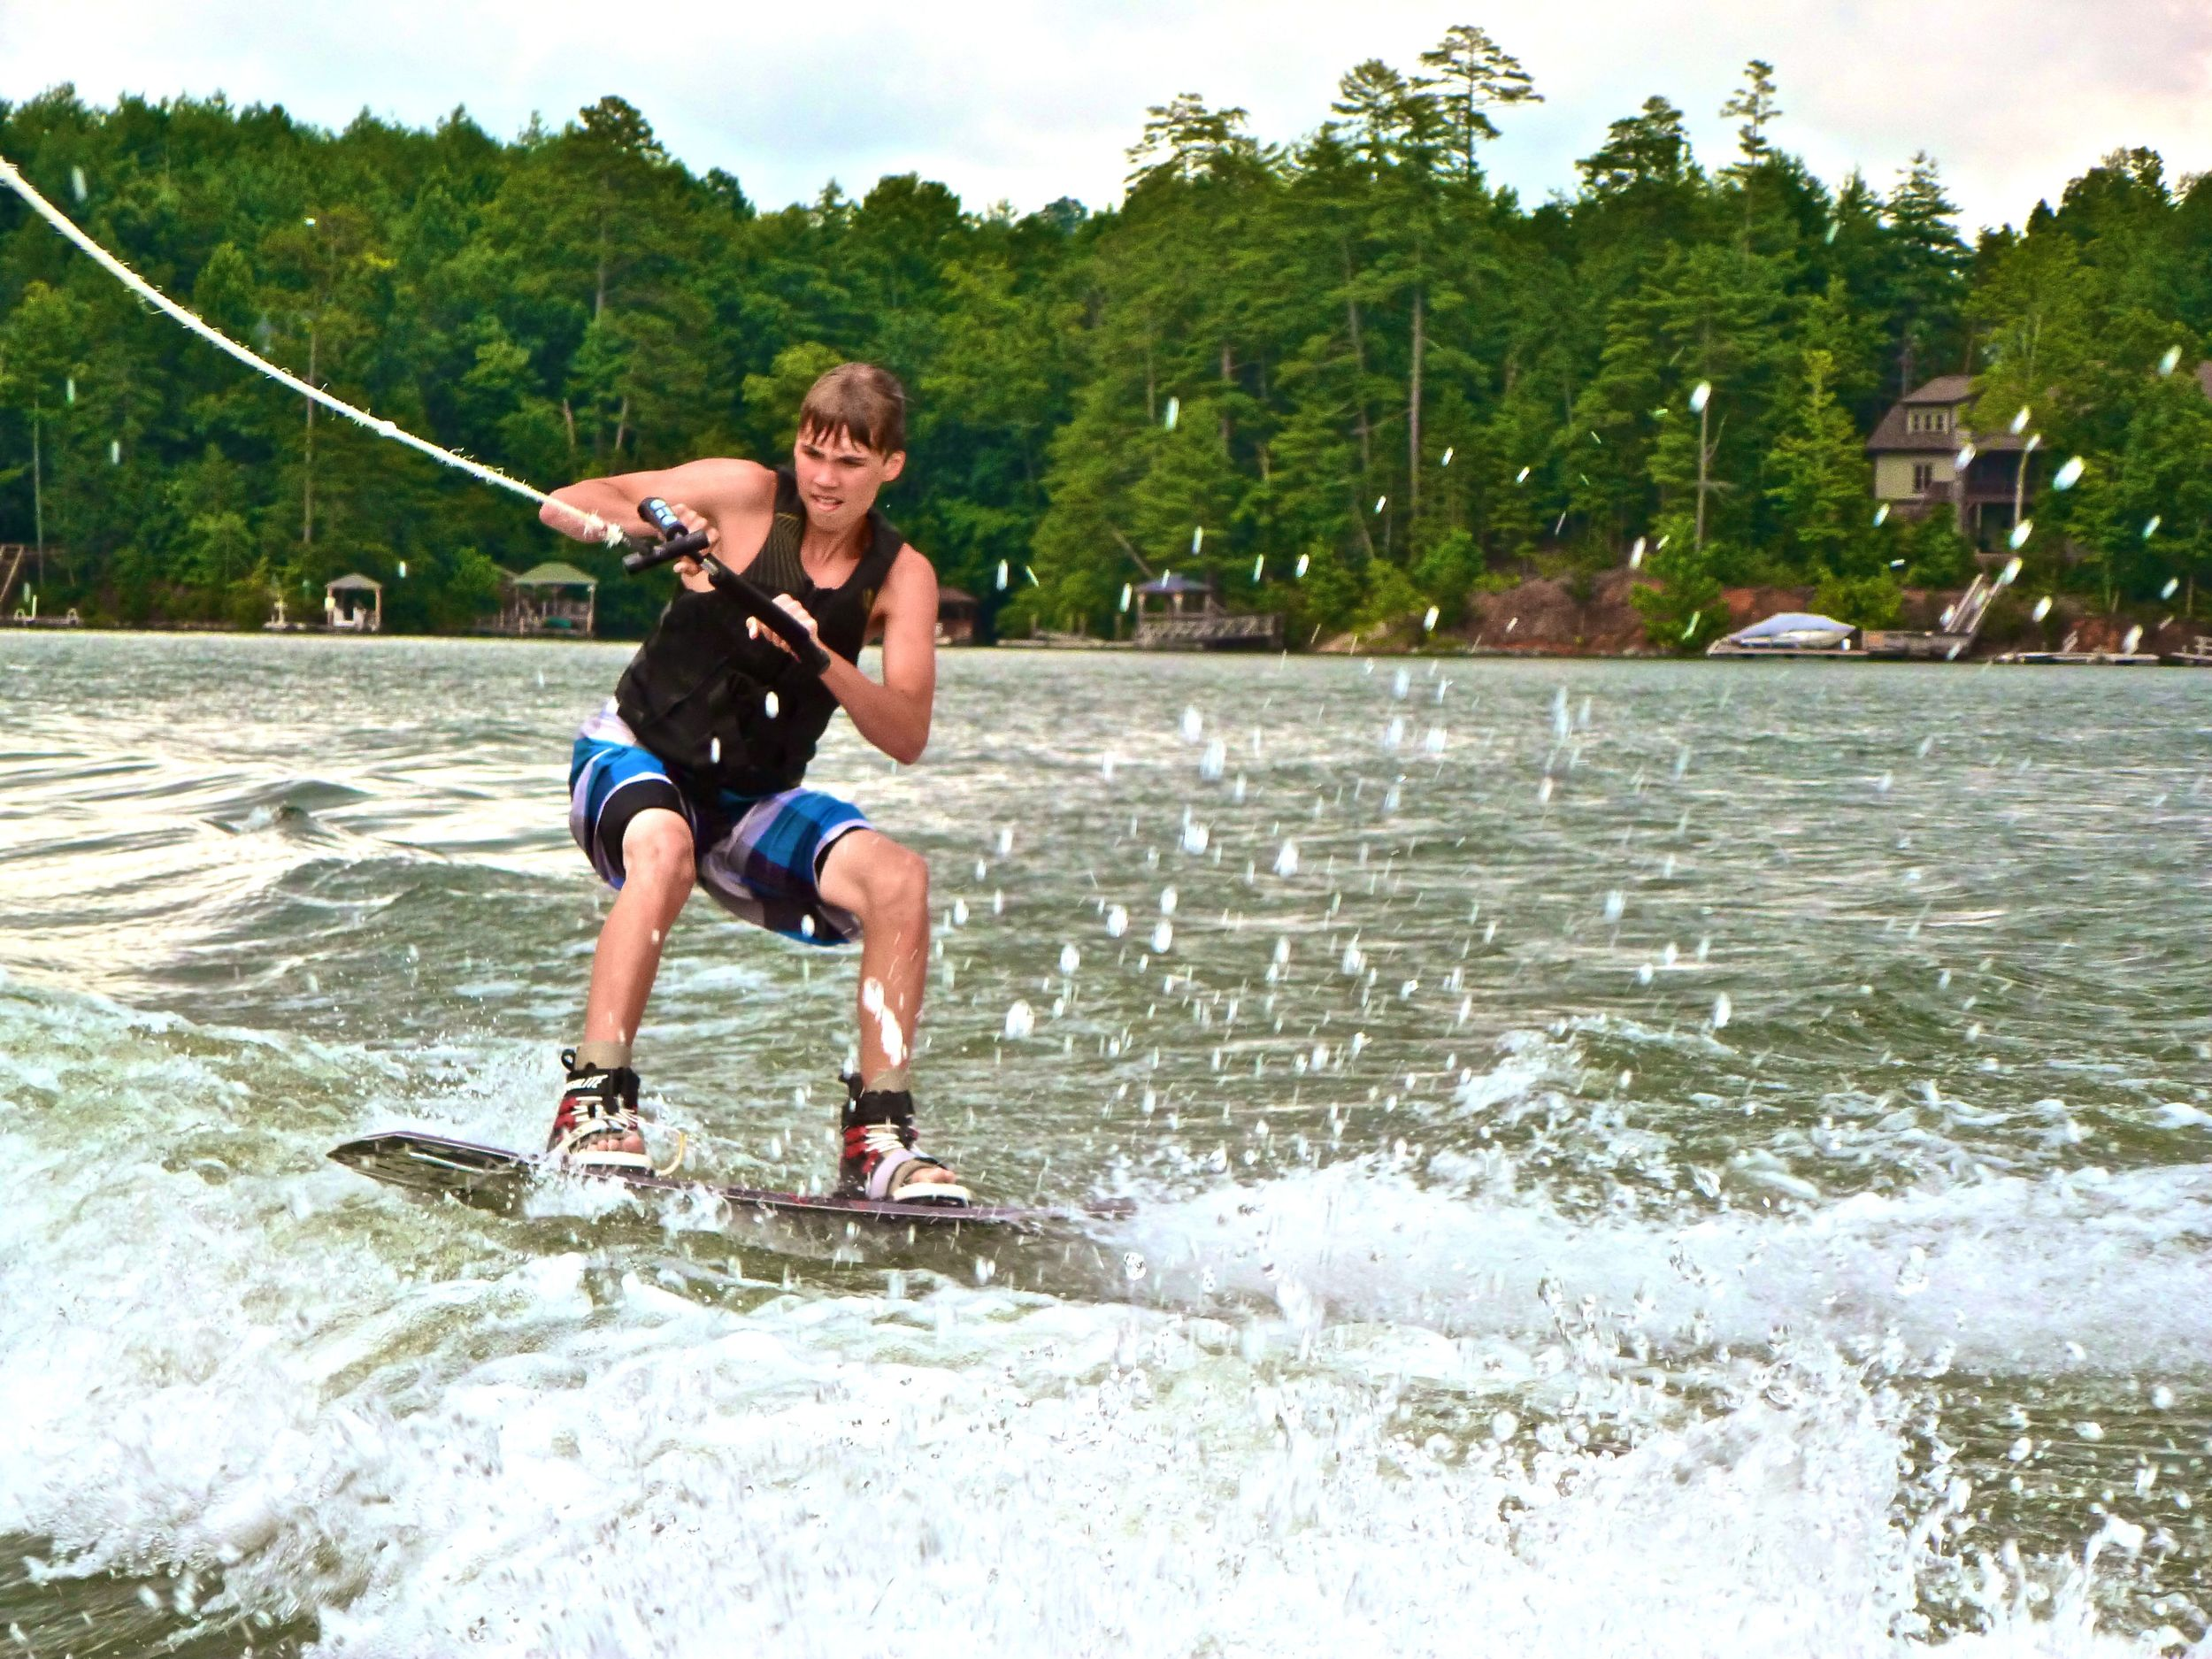 bruce-gets-a-turn-wakeboarding.jpg